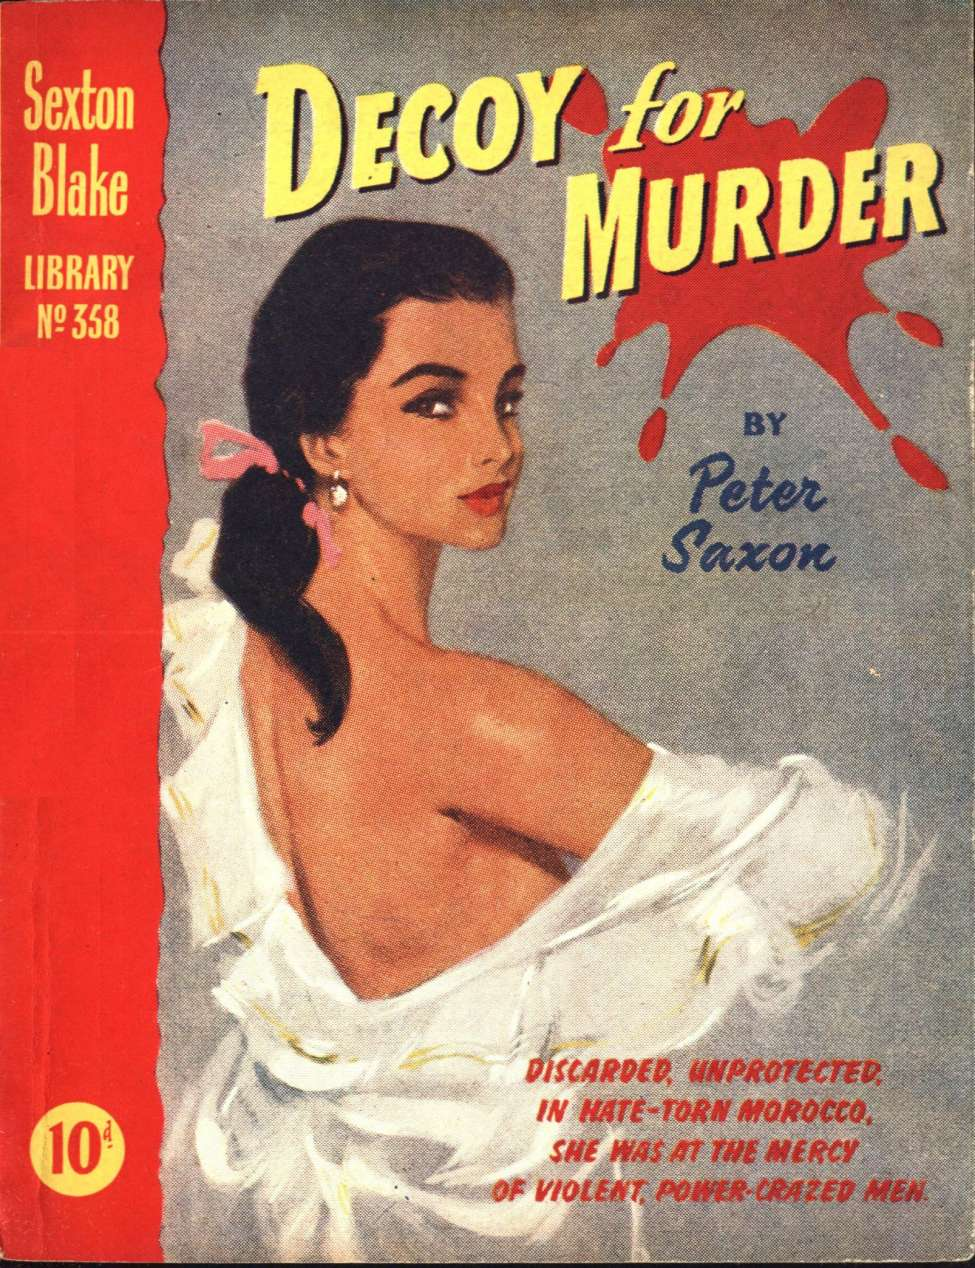 Comic Book Cover For Sexton Blake Library S3 358 - Decoy for Murder